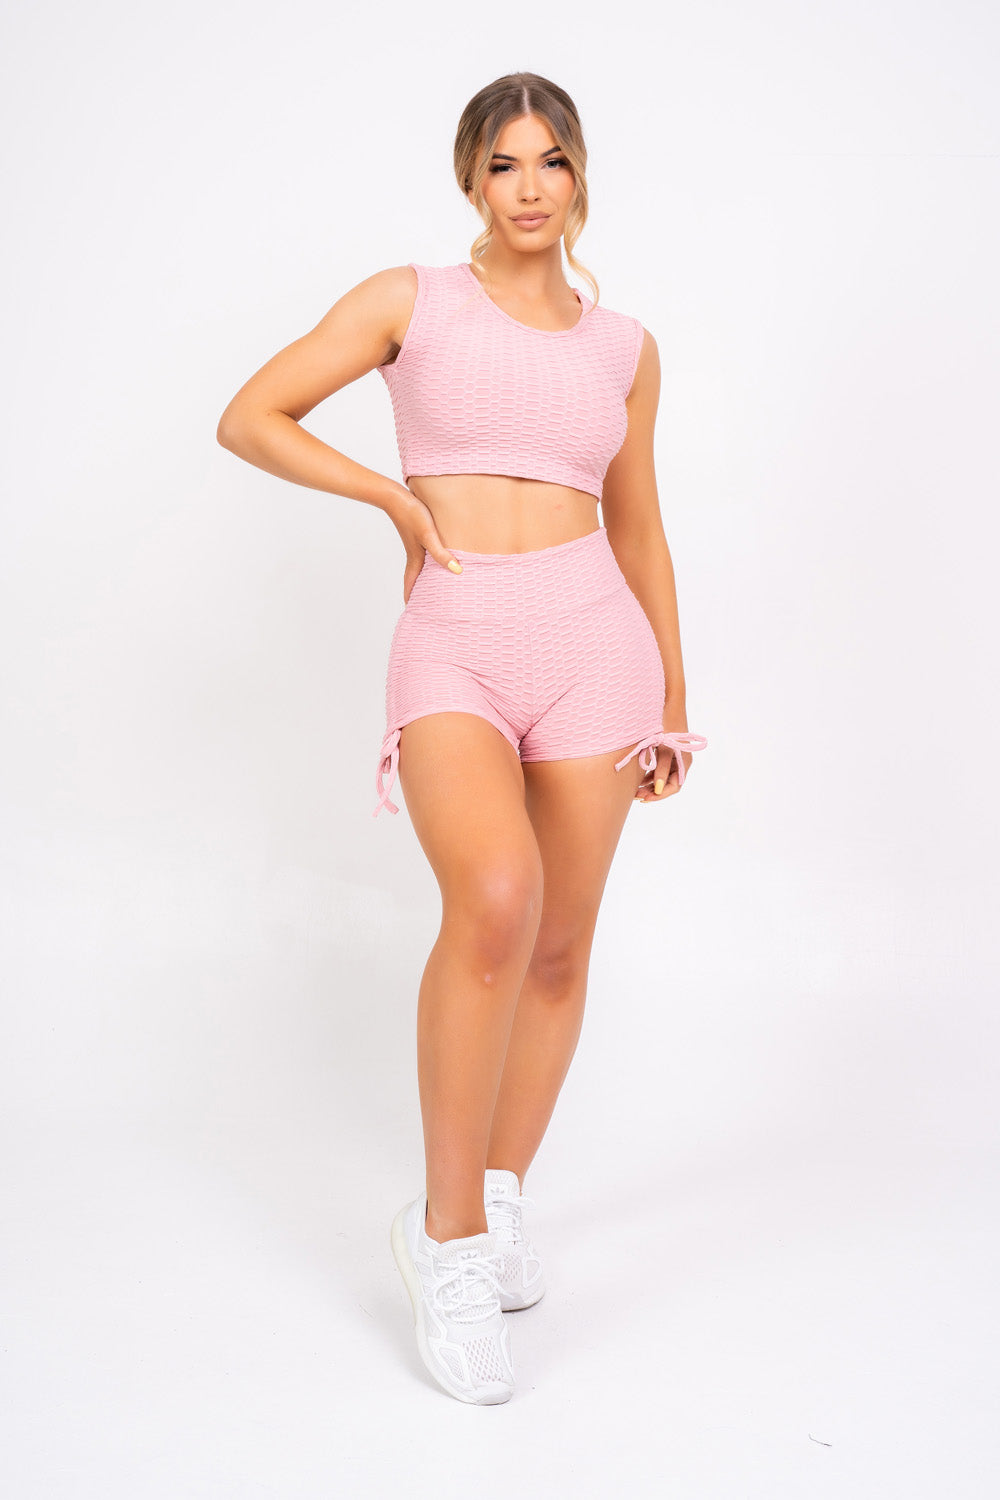 Frankie Blush Pink Honeycomb Sports Top & Shorts Co-ord Fitness Set